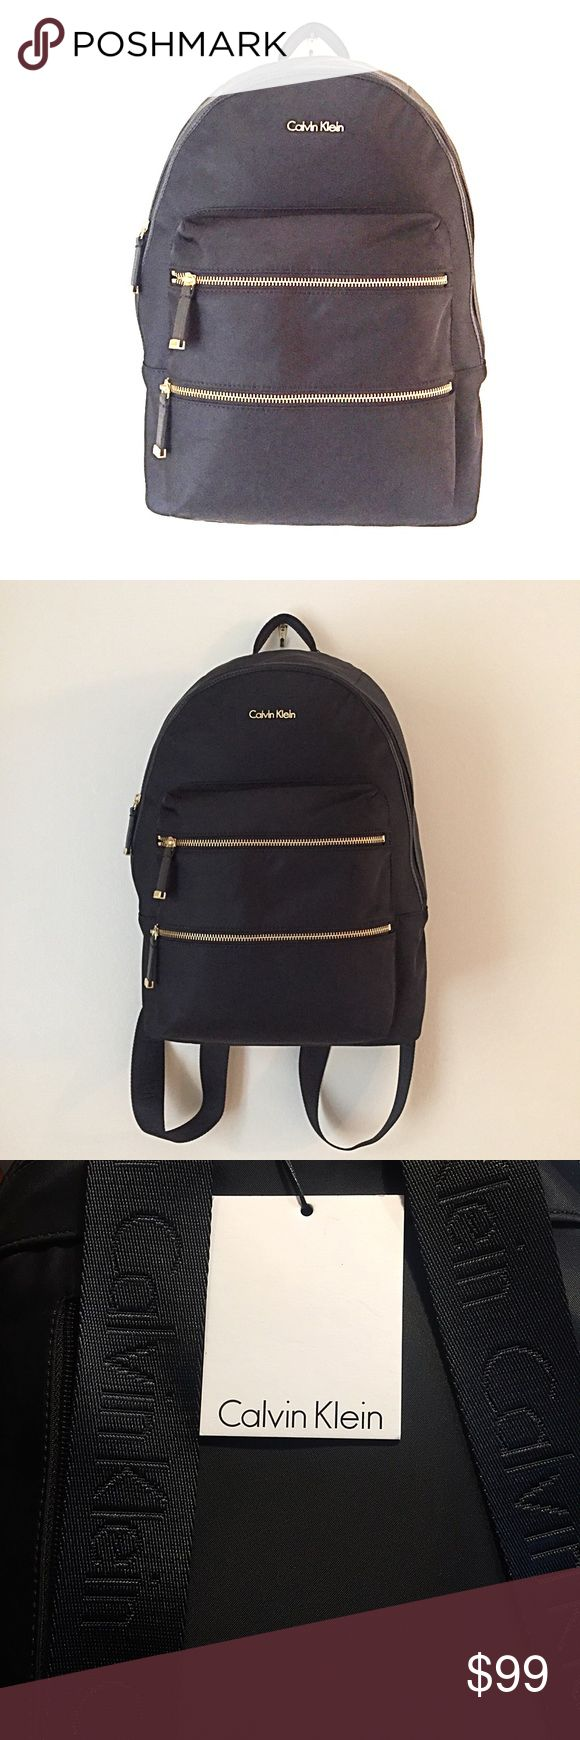 """🎁 GIFT IDEA 🎁 Calvin Klein Black w/Gold Backpack BRAND NEW WITH TAGS  - Black nylon with gold tone zipper and logo accents  - Top handle  - Dual adjustable shoulder straps with Calvin Klein logo  - Zip around top closure  - Exterior features two front zip pocket and one back zip pocket  - Interior features 1 wall zip and 2 wall slip pocket  - Approx. 16"""" H x 11"""" W x 5"""" D  - Approx. 1.5"""" handle drop, 12-18"""" strap drop  - Imported Calvin Klein Bags Backpacks"""